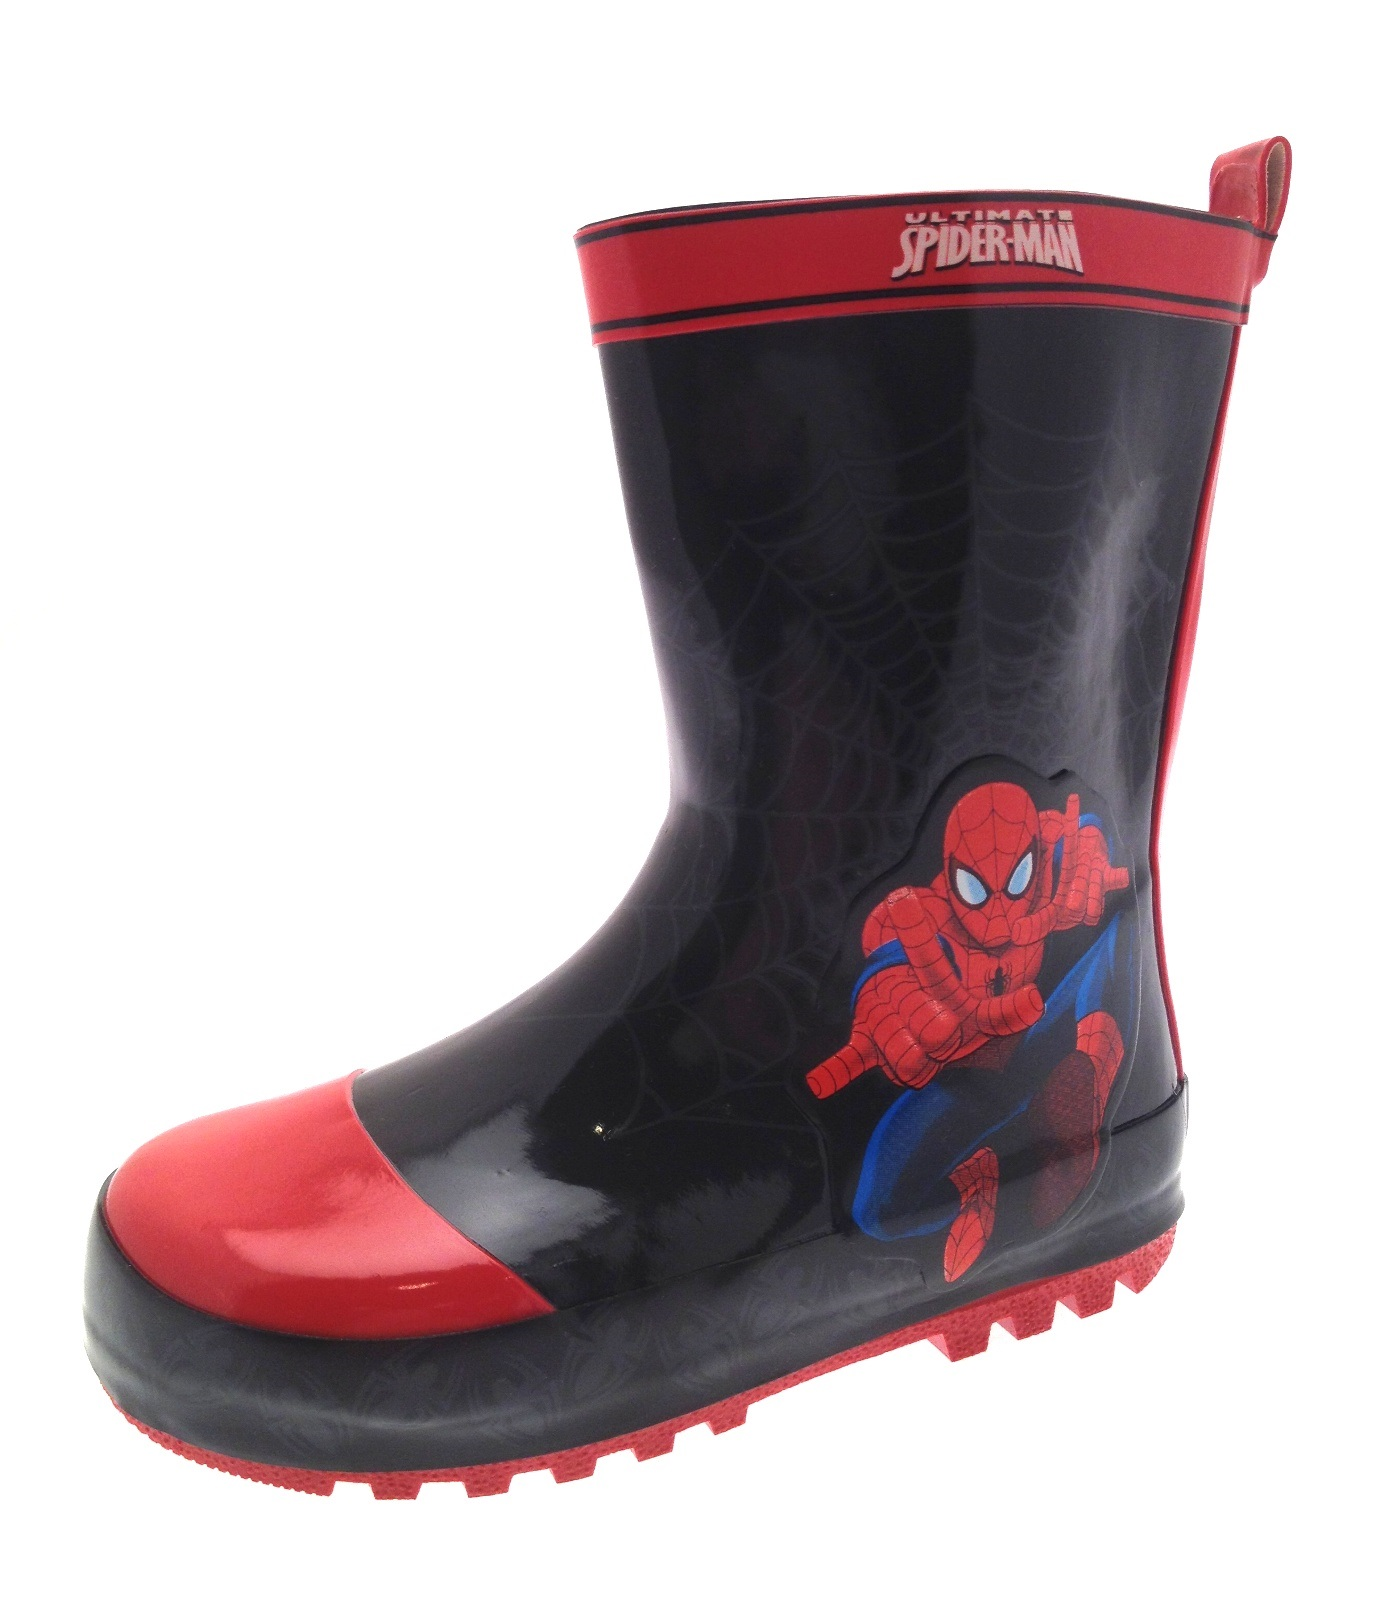 Joules wellies have been making a splash all over the land for years. For boys' traditional wellington boots with a twist, look no further. If you're after a bright, patterned and hardwearing welly, you're in Phone: (0)